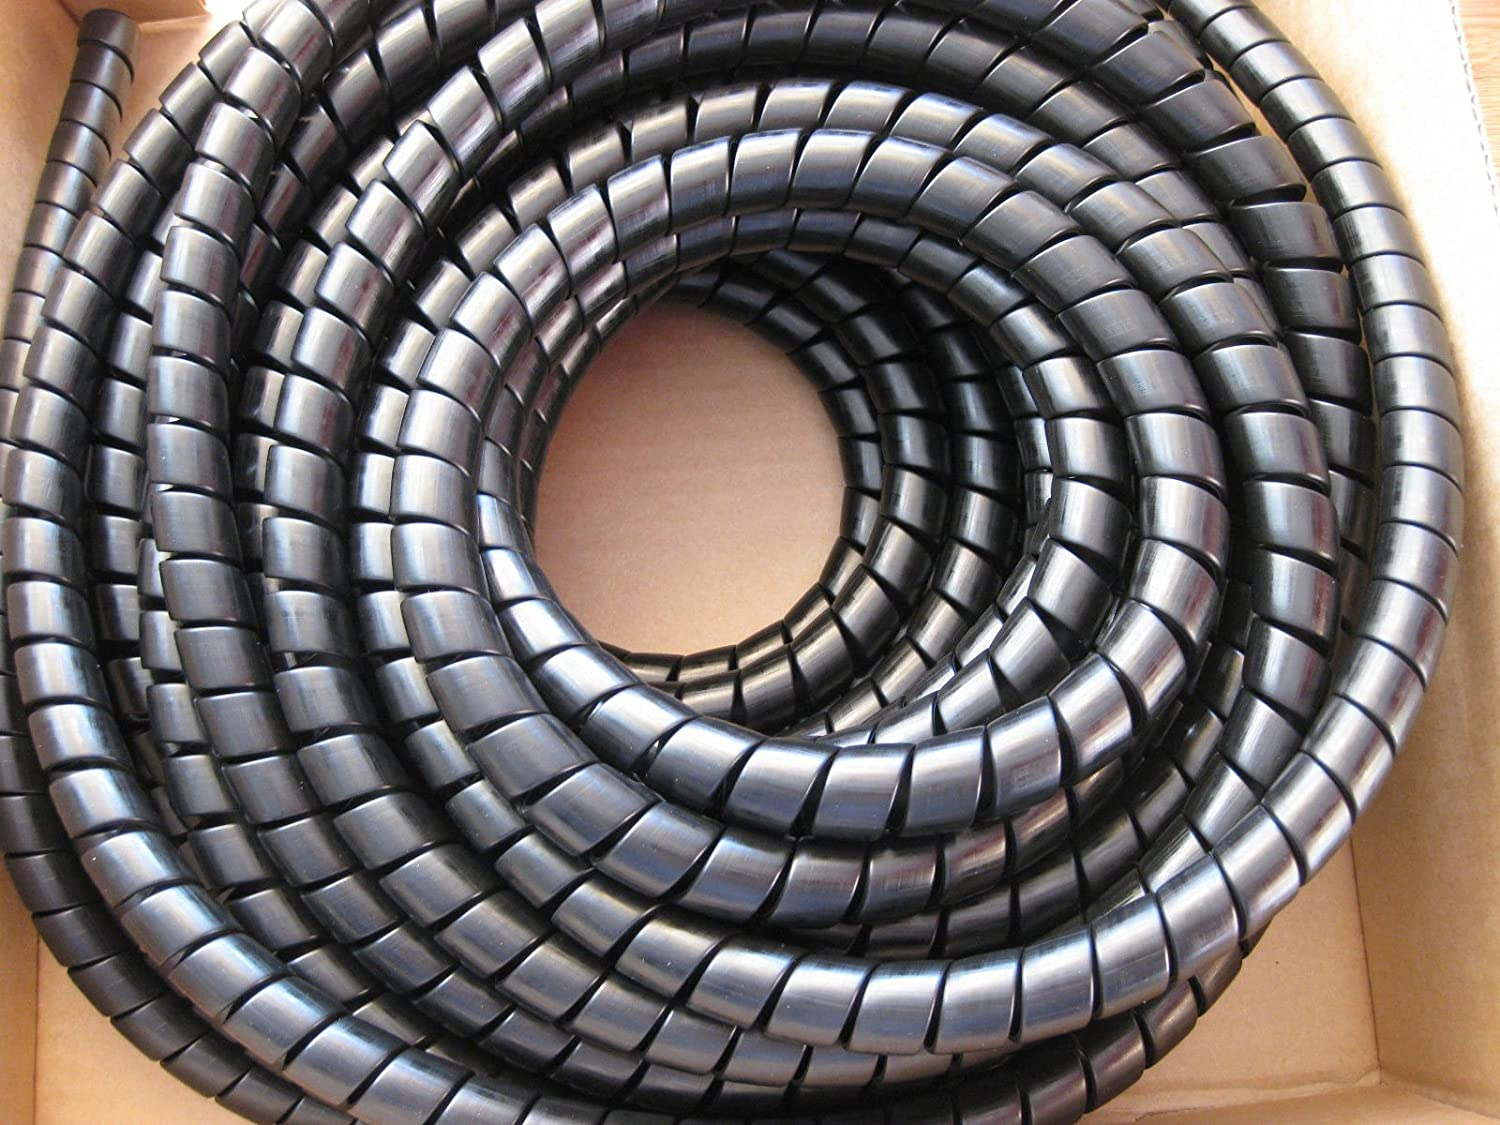 Hydraulic Hose Spiral Wrap Guard Potection 30-38mm JCB Forestry Tractor digger 3 meter